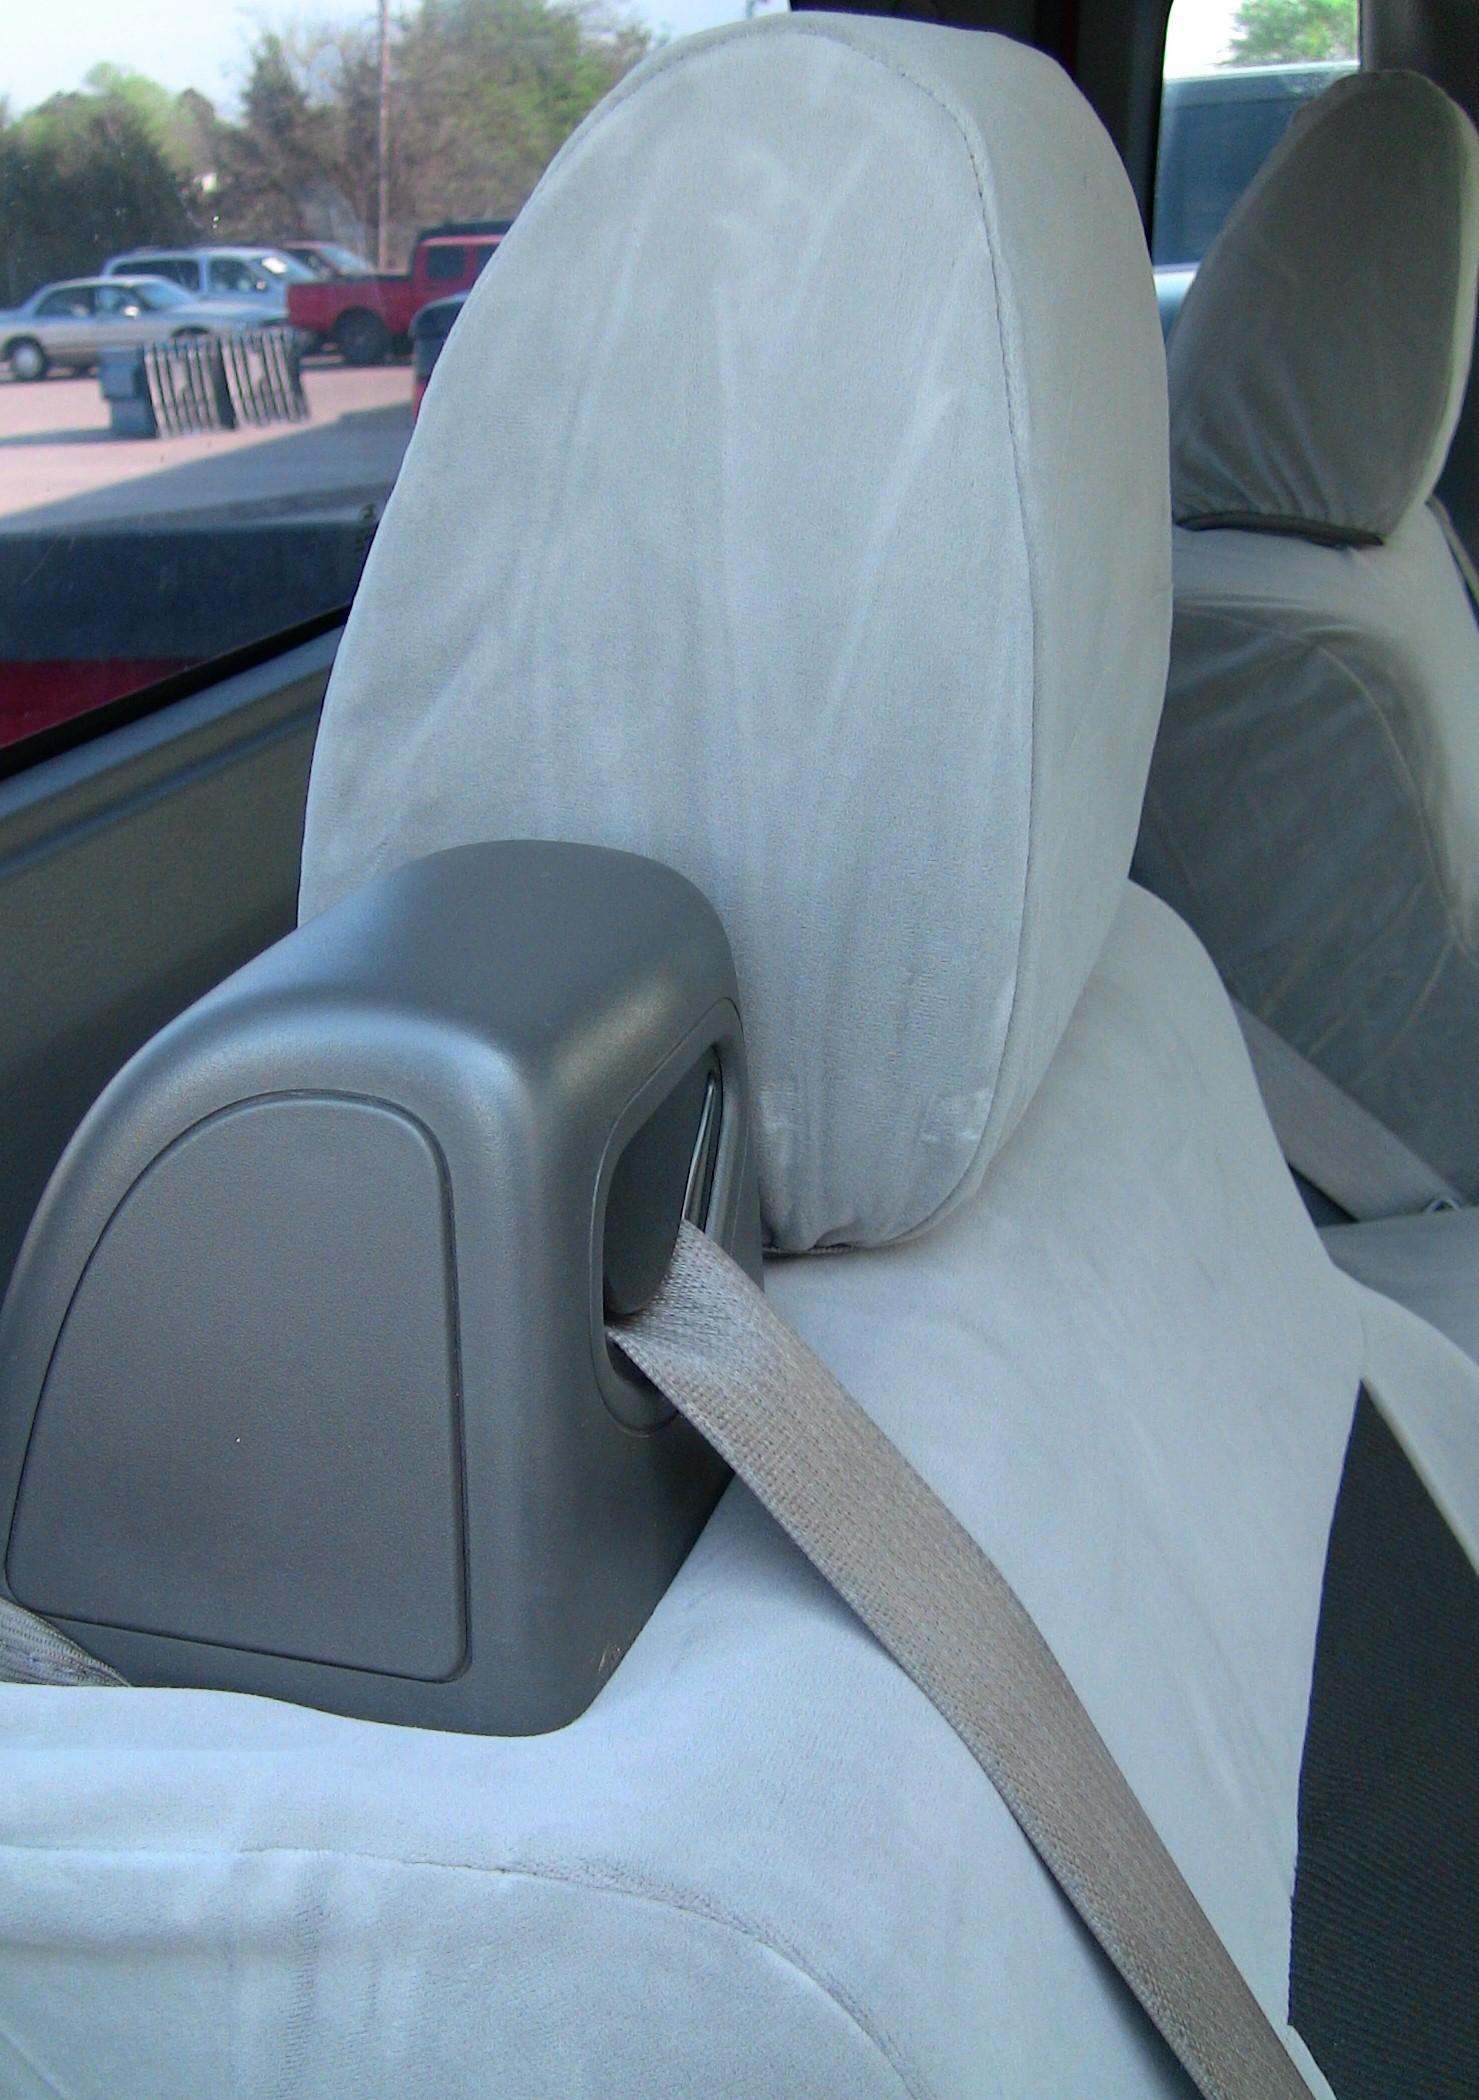 Ford F150 Supercab >> 2004-2008 Ford F150 XLT Super Cab Front 40/20/40 Split Seat with Adjustable Headrests, Center ...